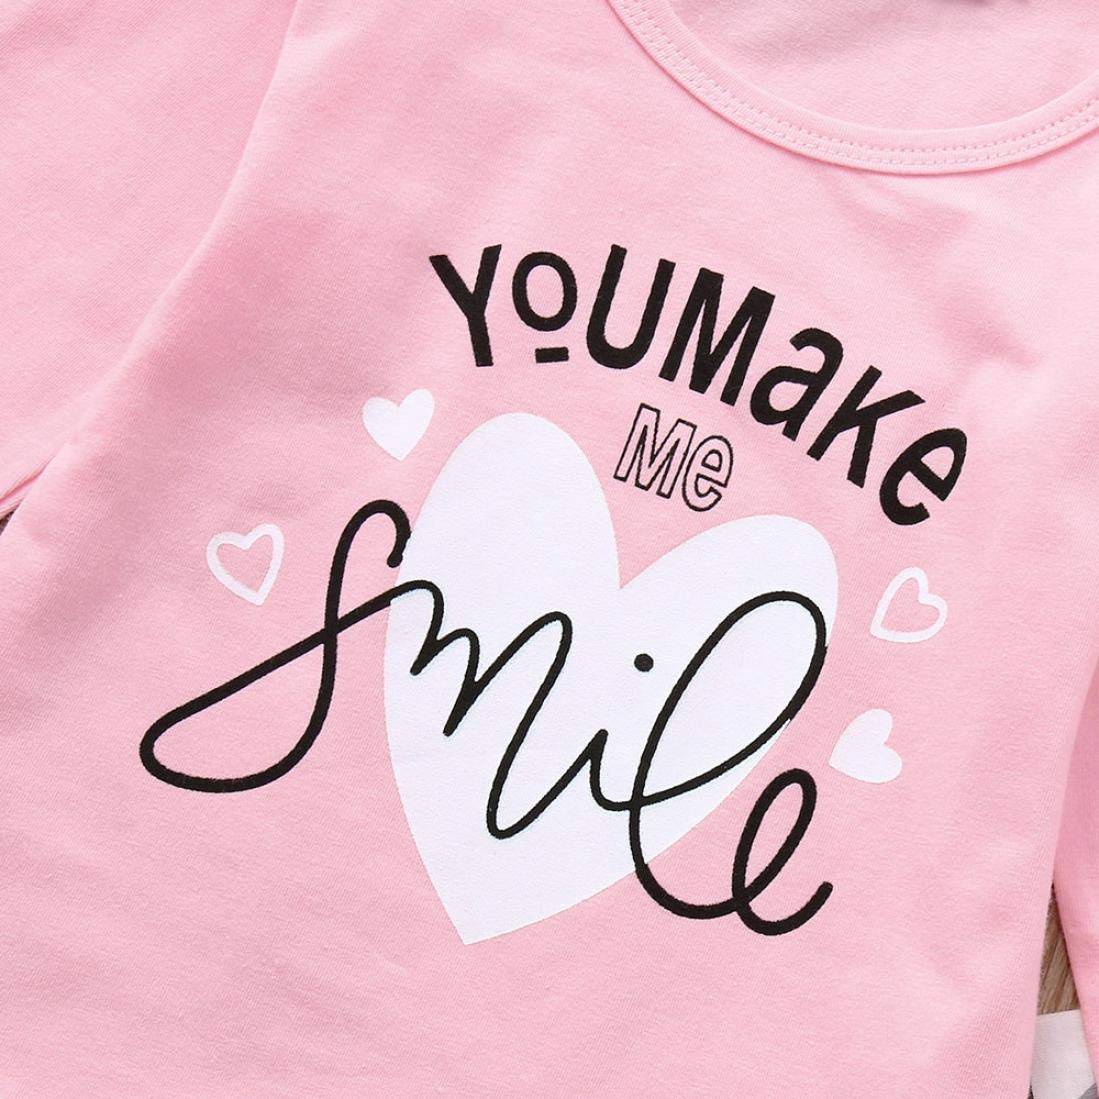 Baby Kids Outfits,Fineser Newborn Toddler Infant Baby Girls Letter Print Tops+Geometric Pants+Headbands Outfits 3 Sets